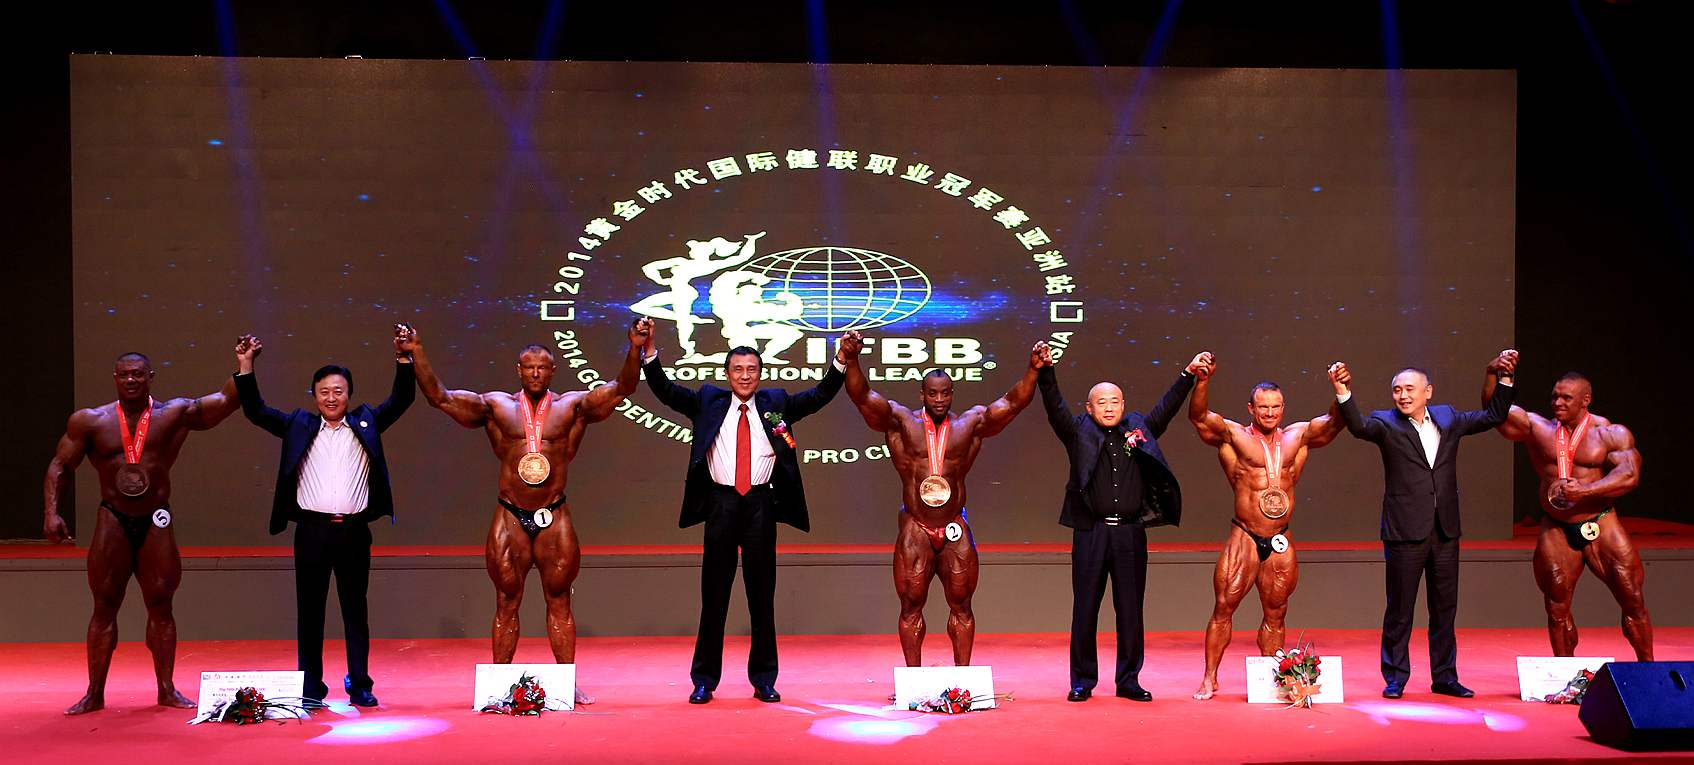 Goldentimes IFBB Pro Championships 2014!! 20117_30_1